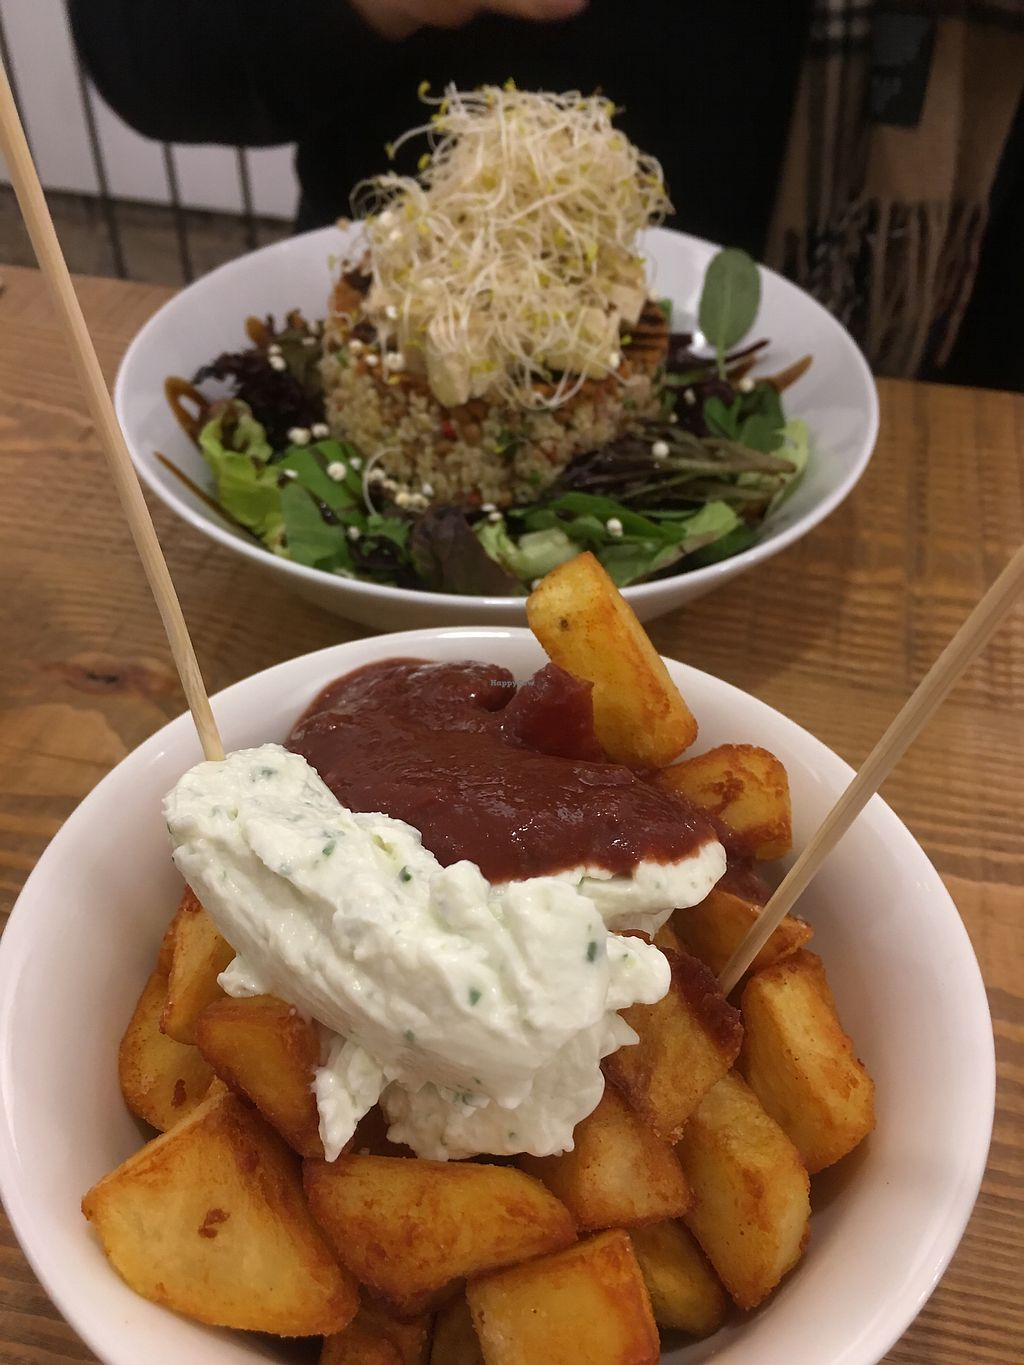 "Photo of Almalibre Acai Bar  by <a href=""/members/profile/AnikaSch%C3%A4fer"">AnikaSchäfer</a> <br/>Quinoa salad and patatas bravas <br/> March 22, 2018  - <a href='/contact/abuse/image/97617/374568'>Report</a>"